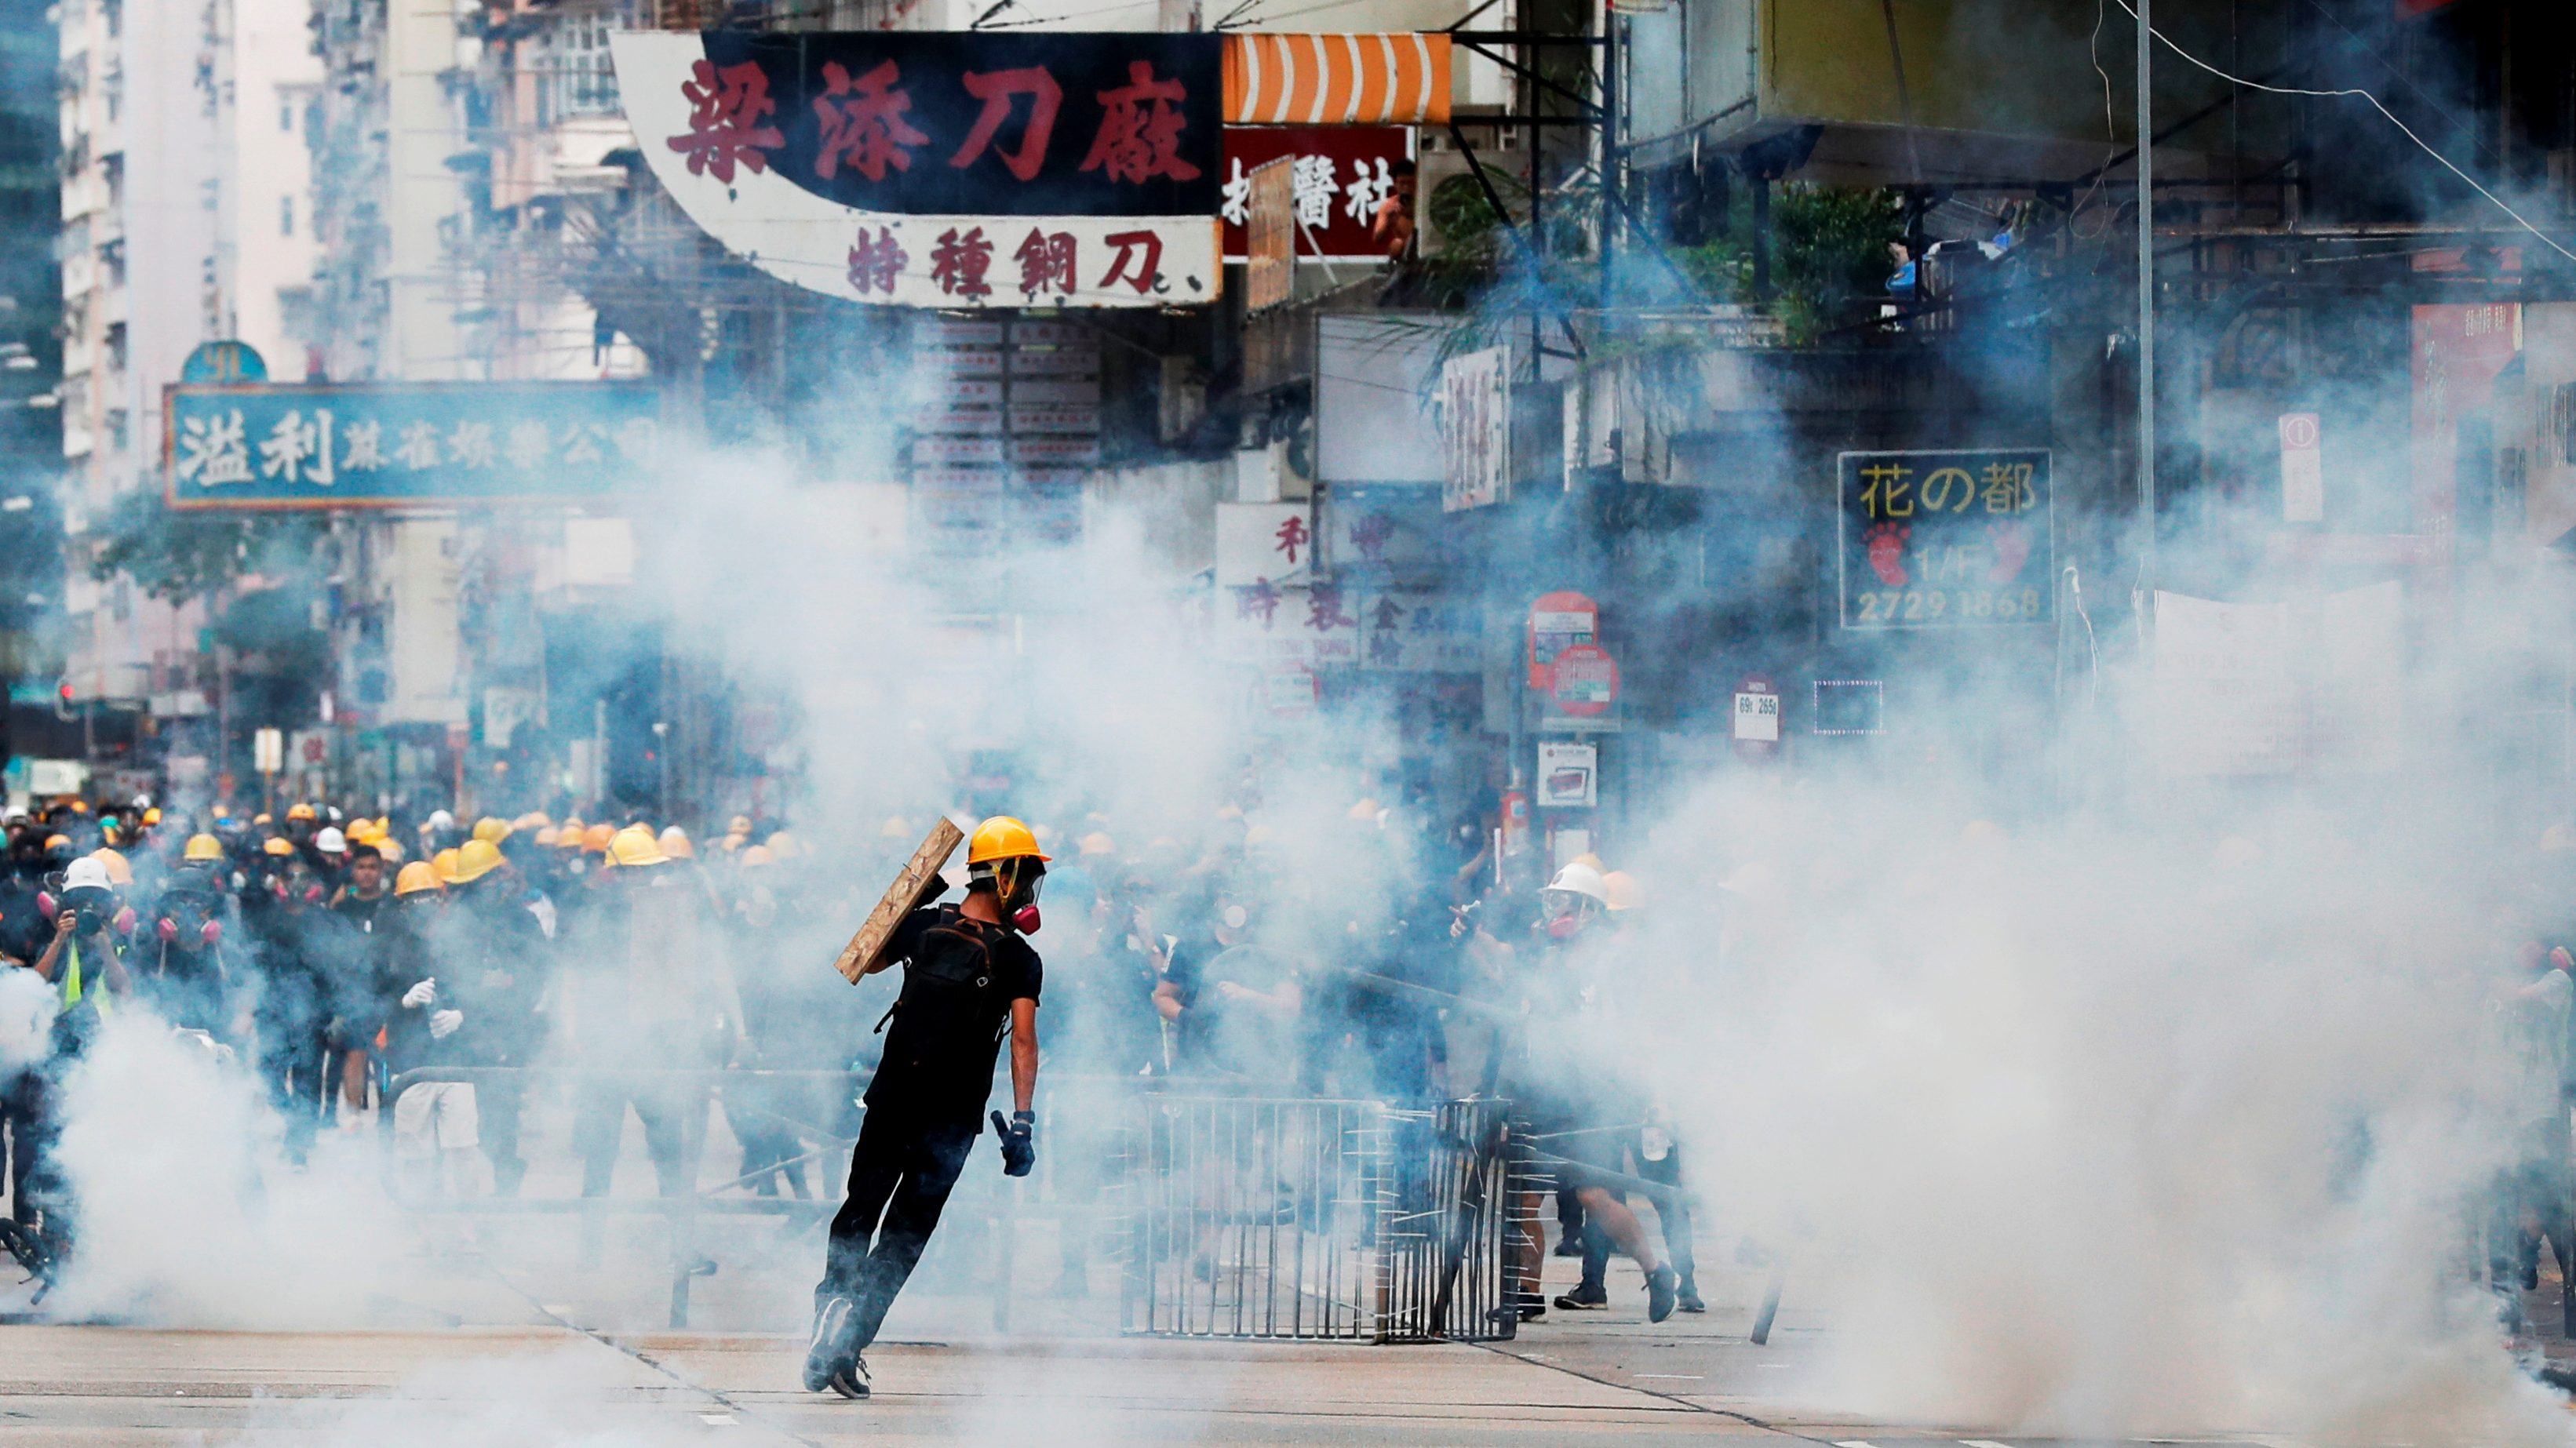 Anti-extradition bill protesters react from tear gas as riot police try to disperse them during a protest at Sham Shui Po in Hong Kong